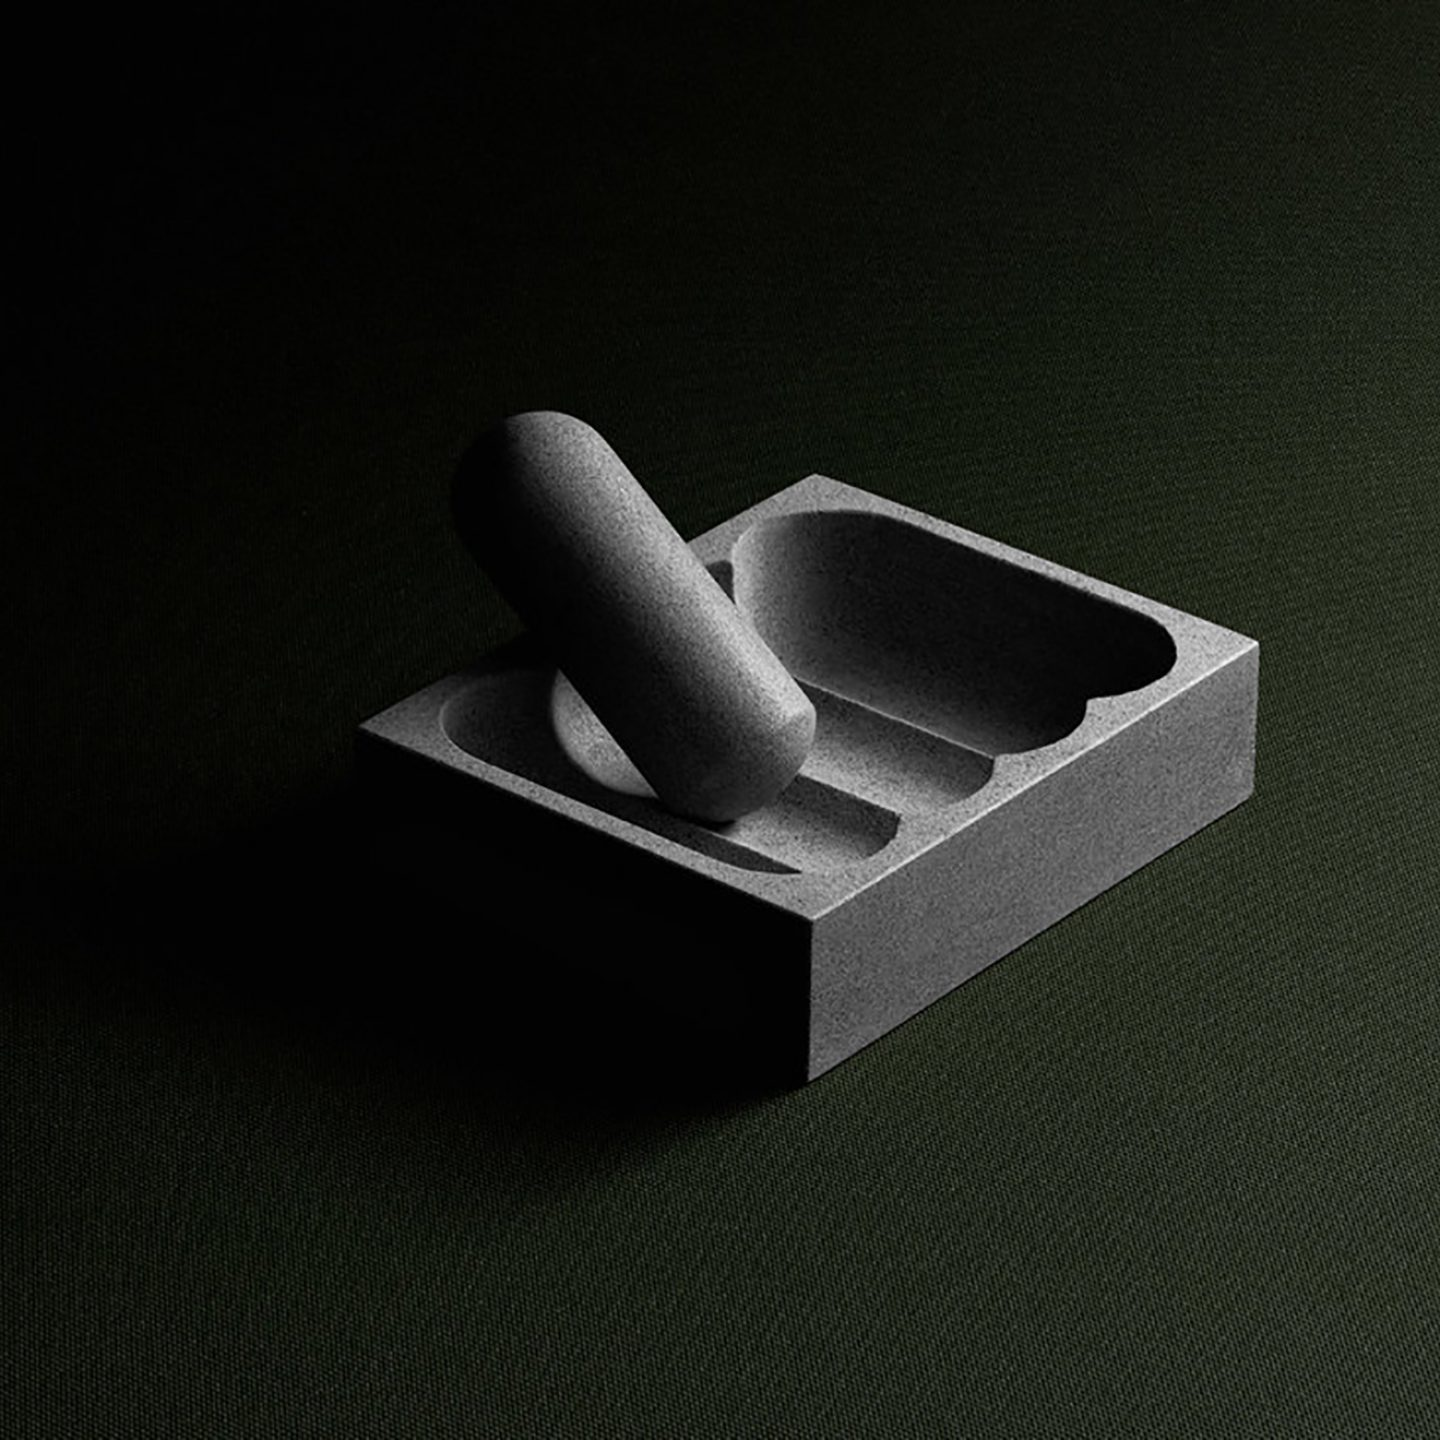 IGNANT-Design-Kitchen-Tino-Seubert-studio-Flute-Mortar-Pestle-1